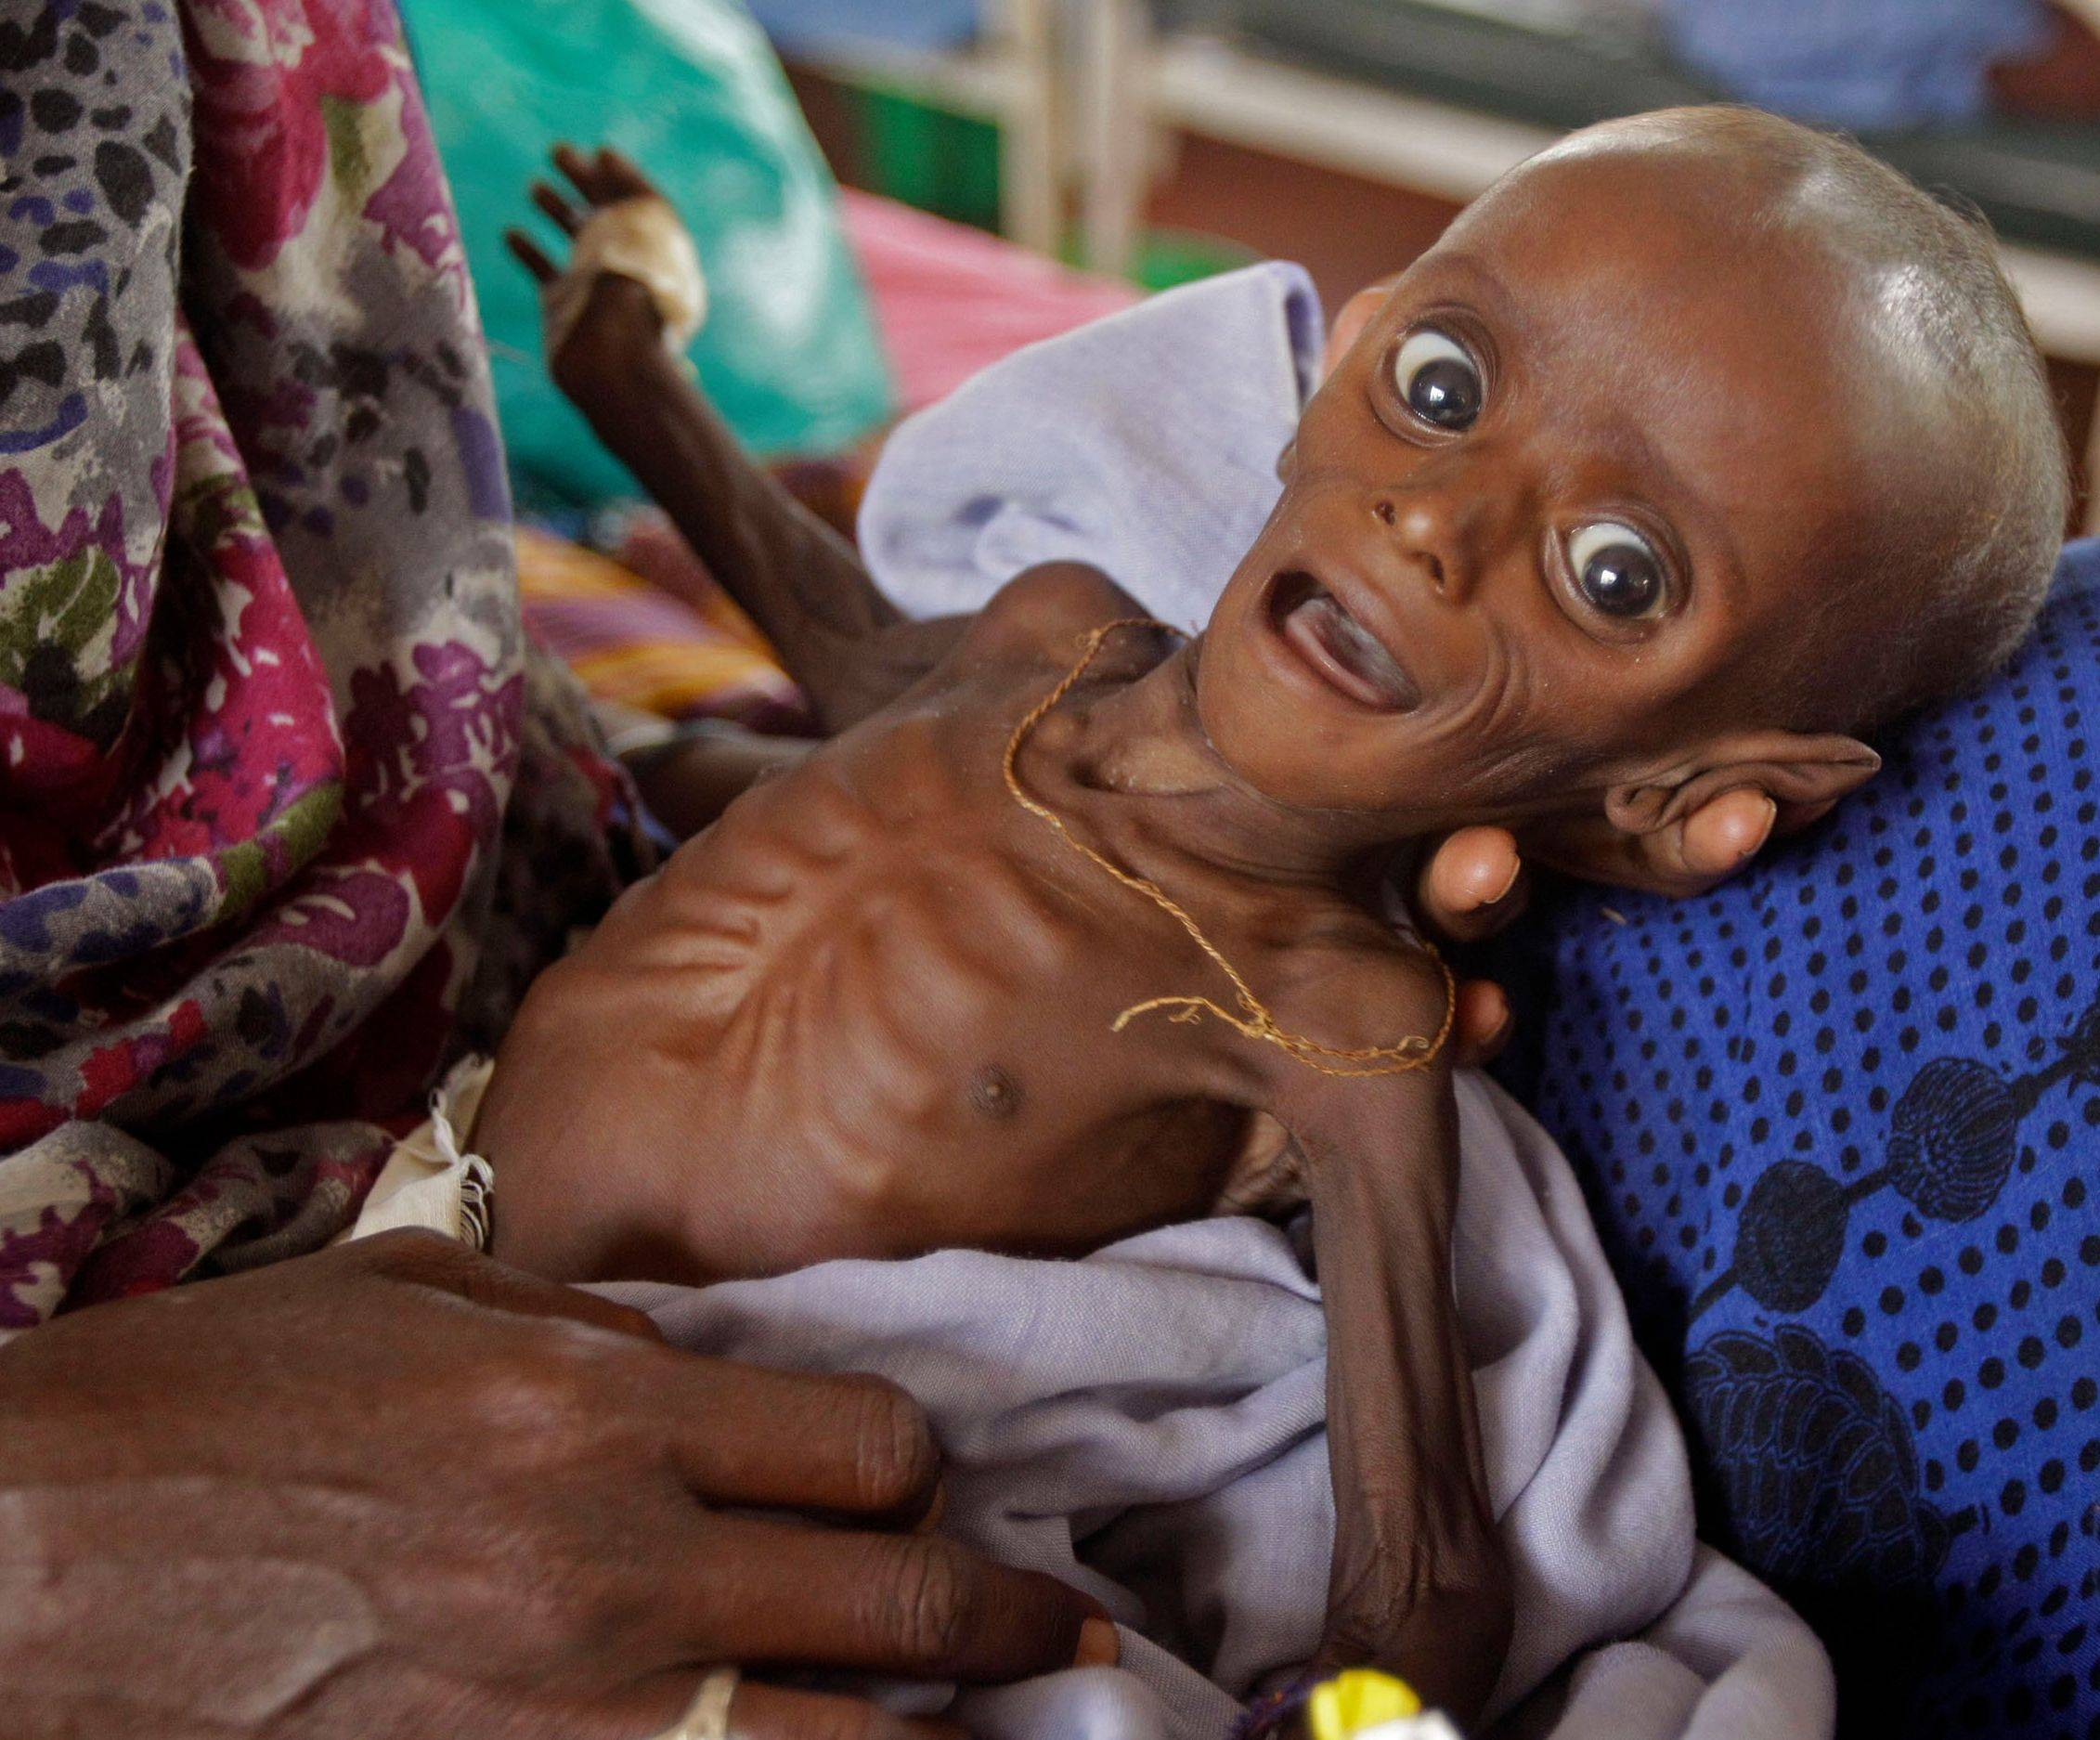 Mihag Gedi Farah, who at a 7 months old weighs just 7 pounds, is held by his mother in a field hospital of the International Rescue Committee in Dadaab, Kenya, on Tuesday.